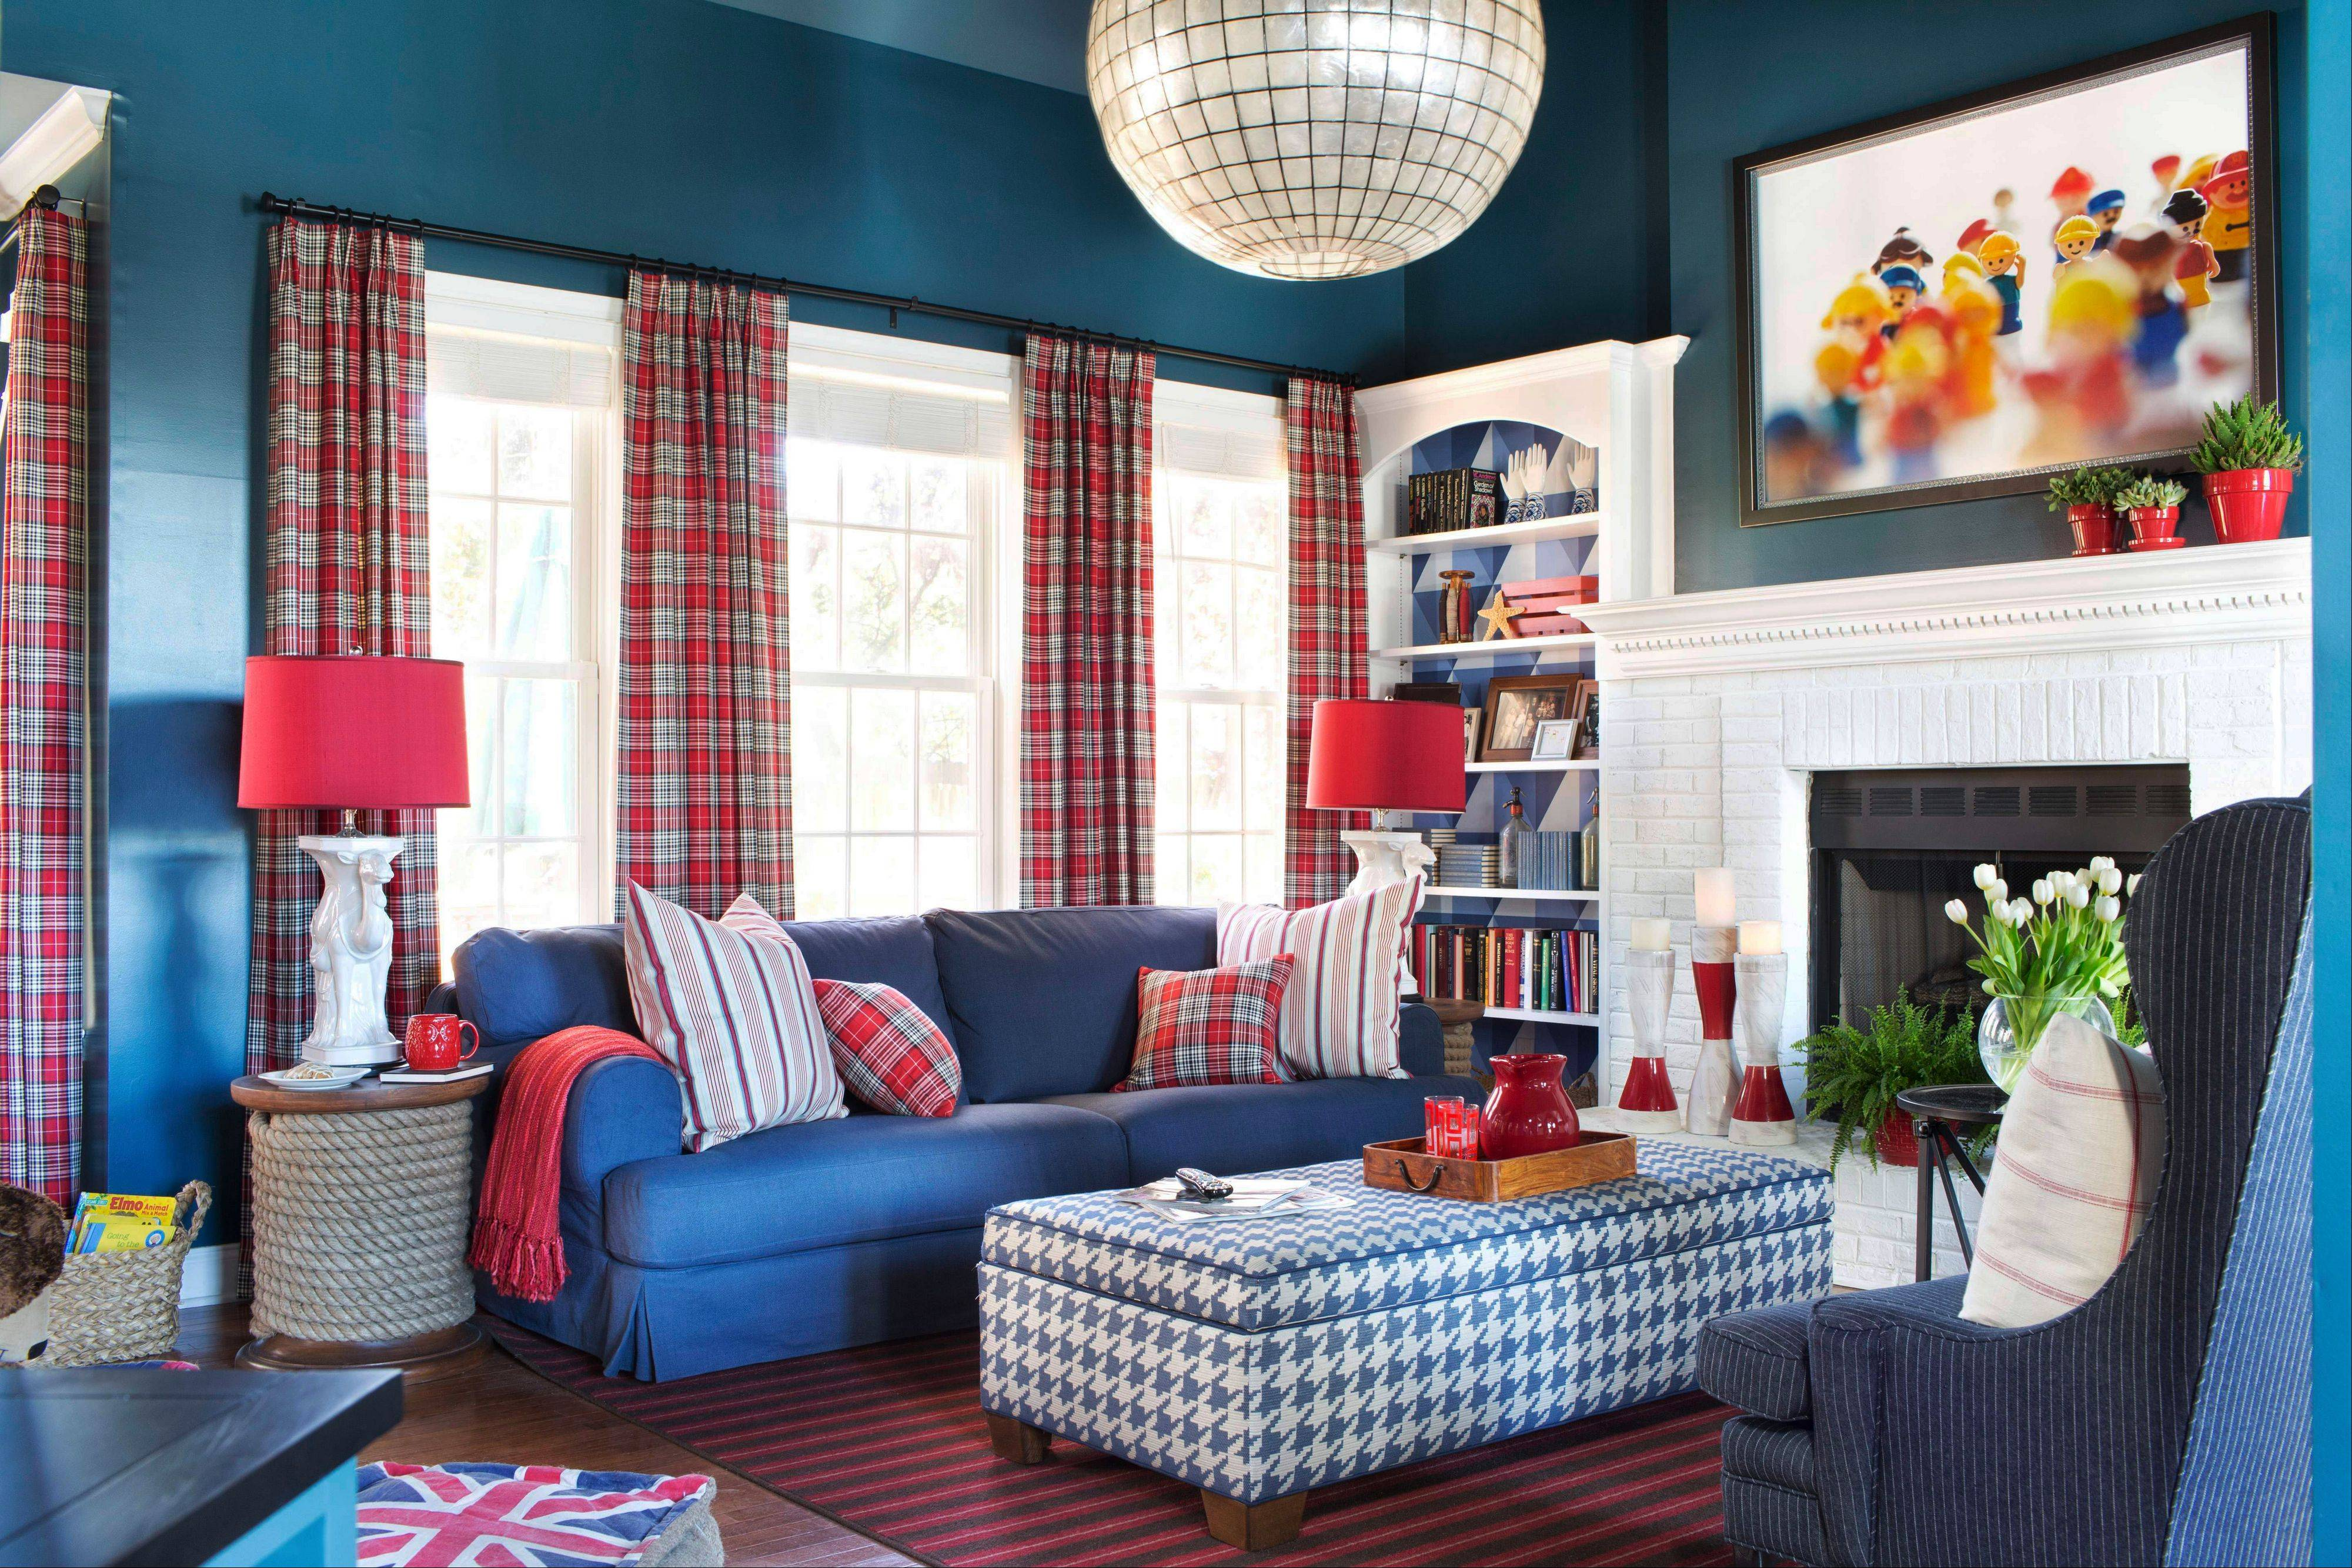 A playful family room is decorated by designer Brian Patrick Flynn with framed photography of Dupo figures from the 1980s, playful accessories and a bold palette of navy blue and fire engine red.